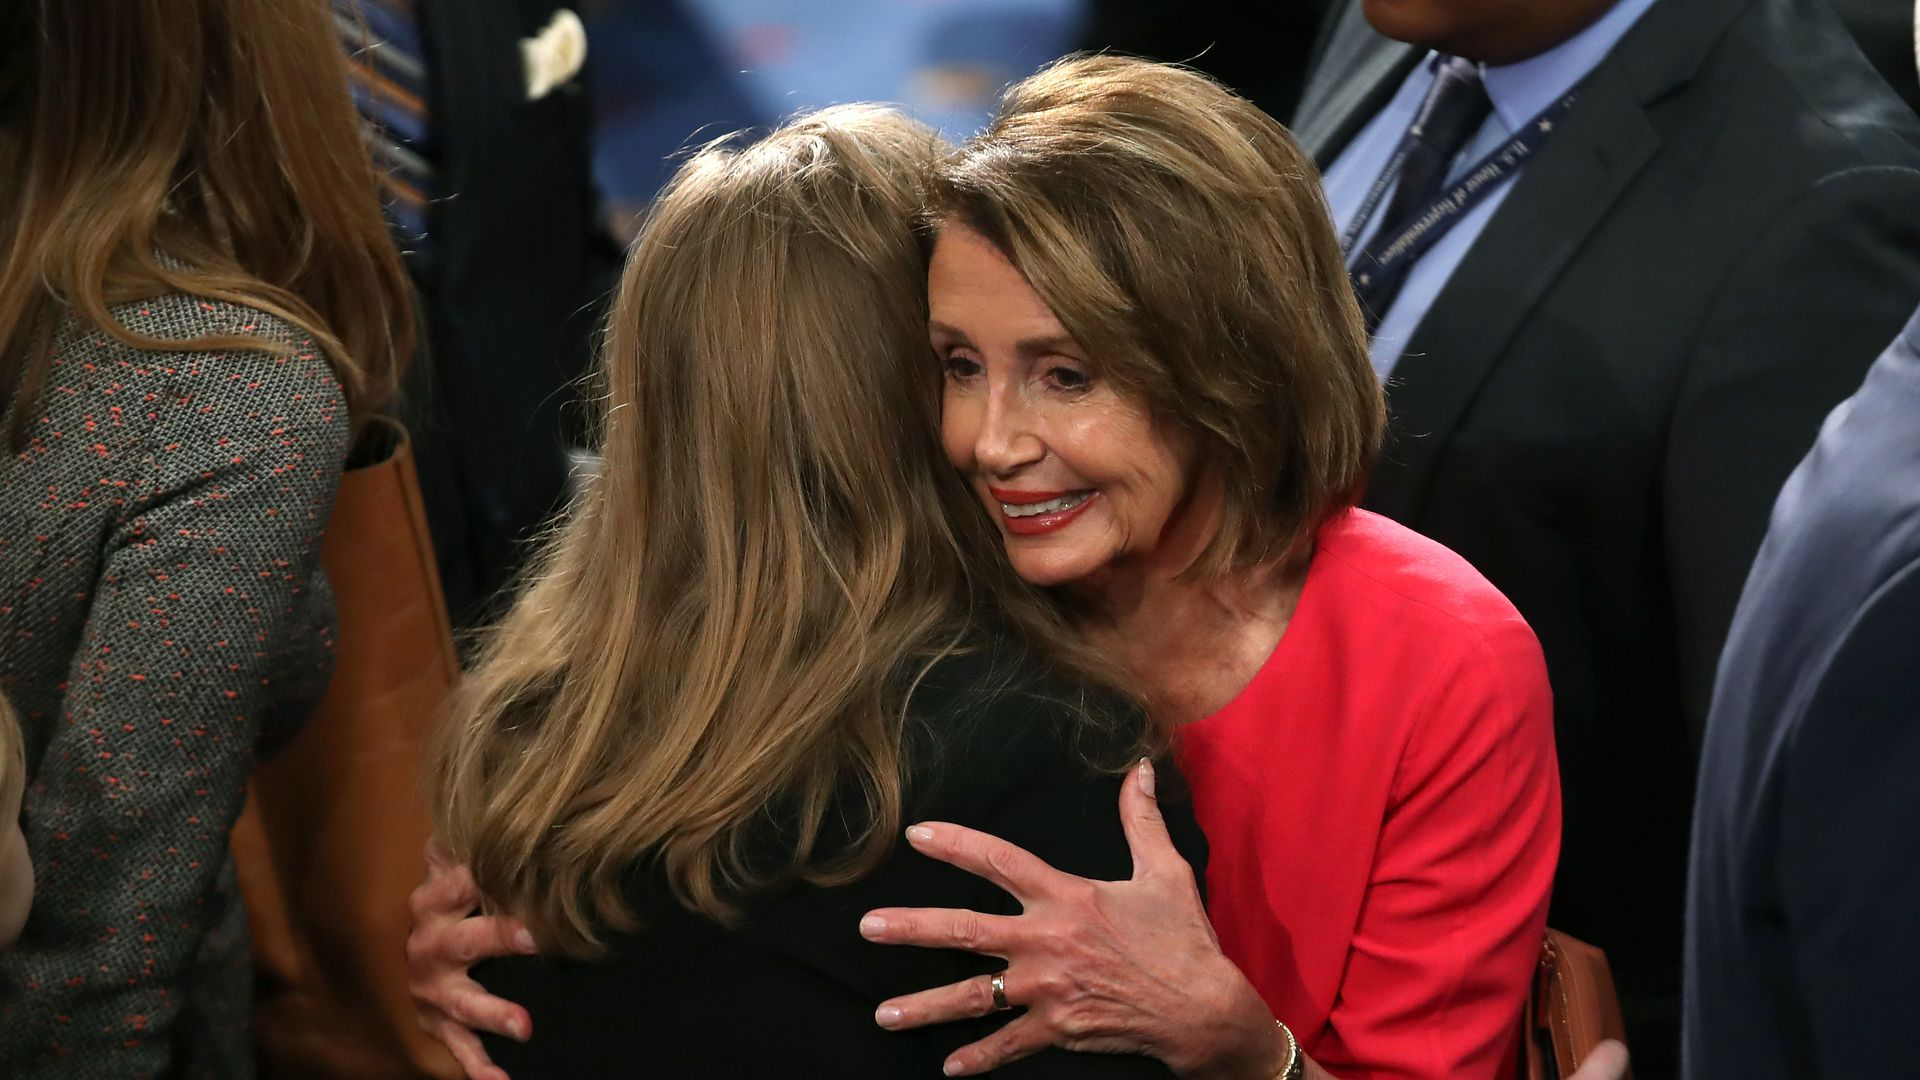 Nancy Pelosi officially elected speaker of the House